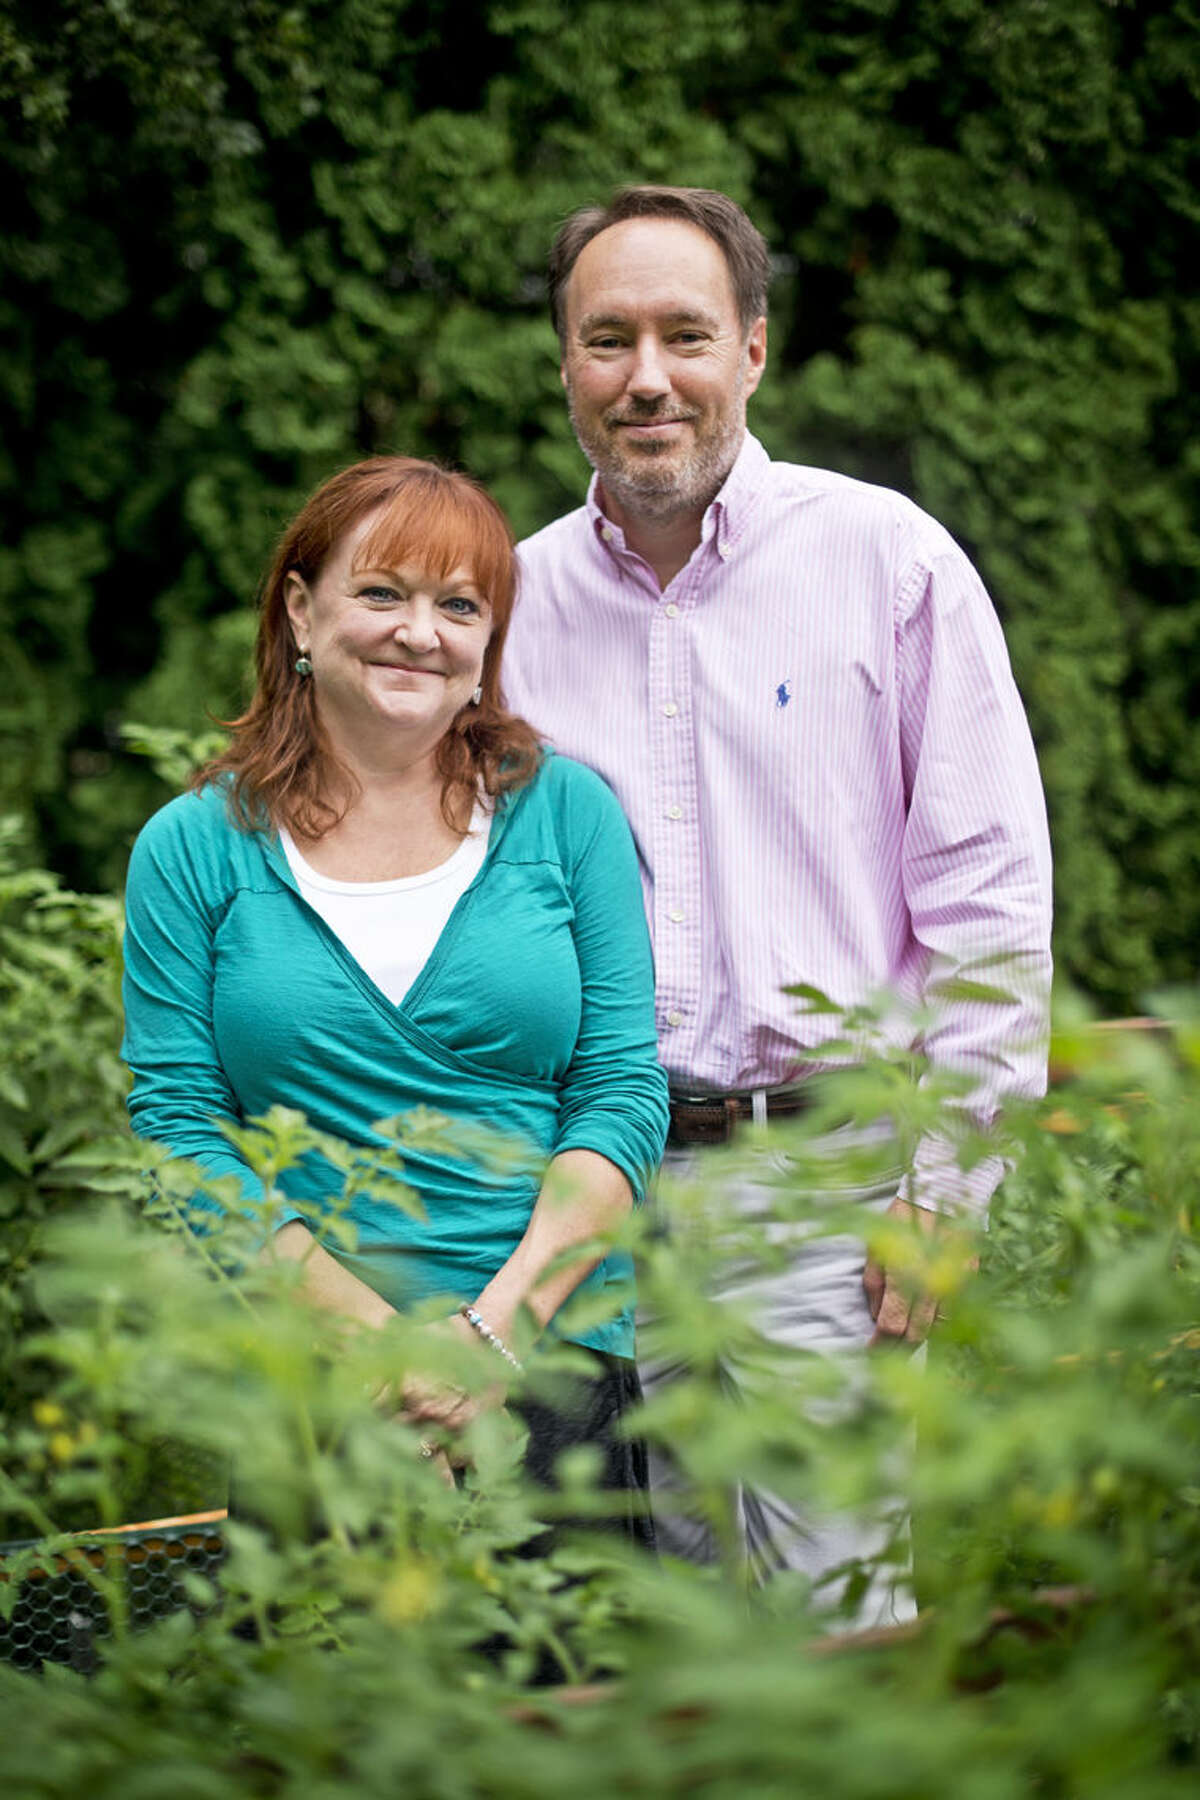 Carole and Kim Donaghy pose for a portrait in their garden at their Midland home.